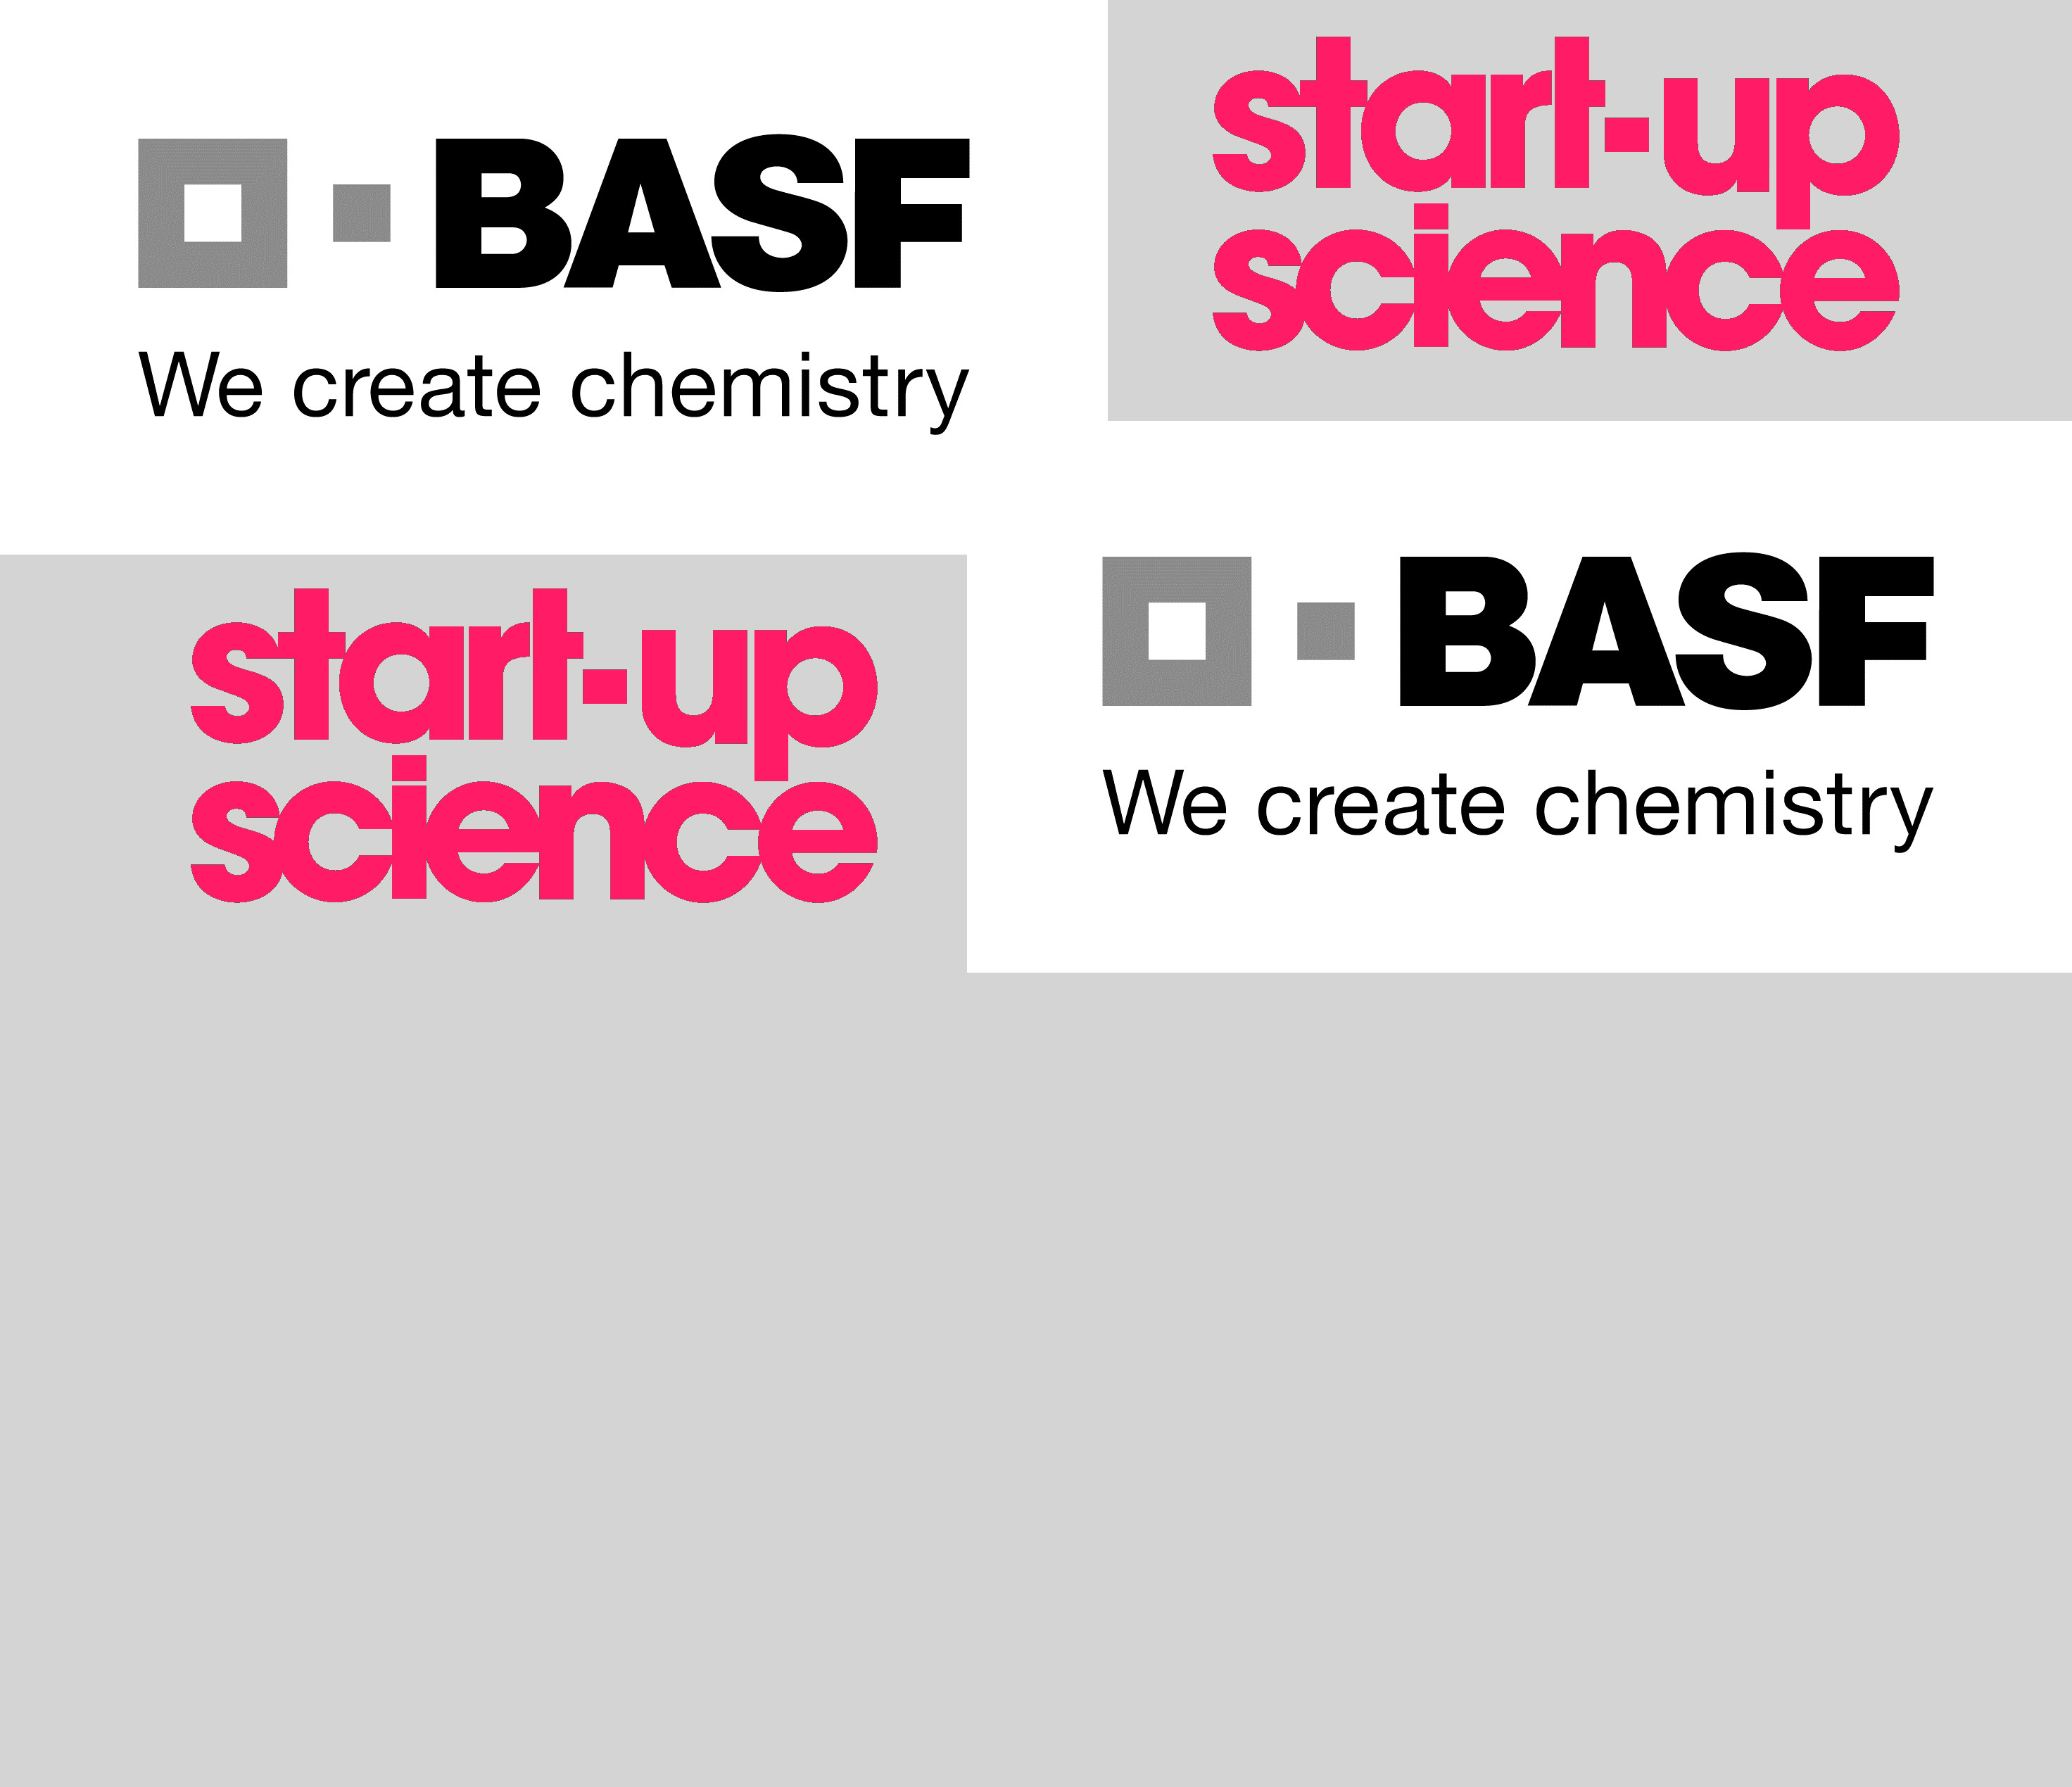 BASF Start-up Science